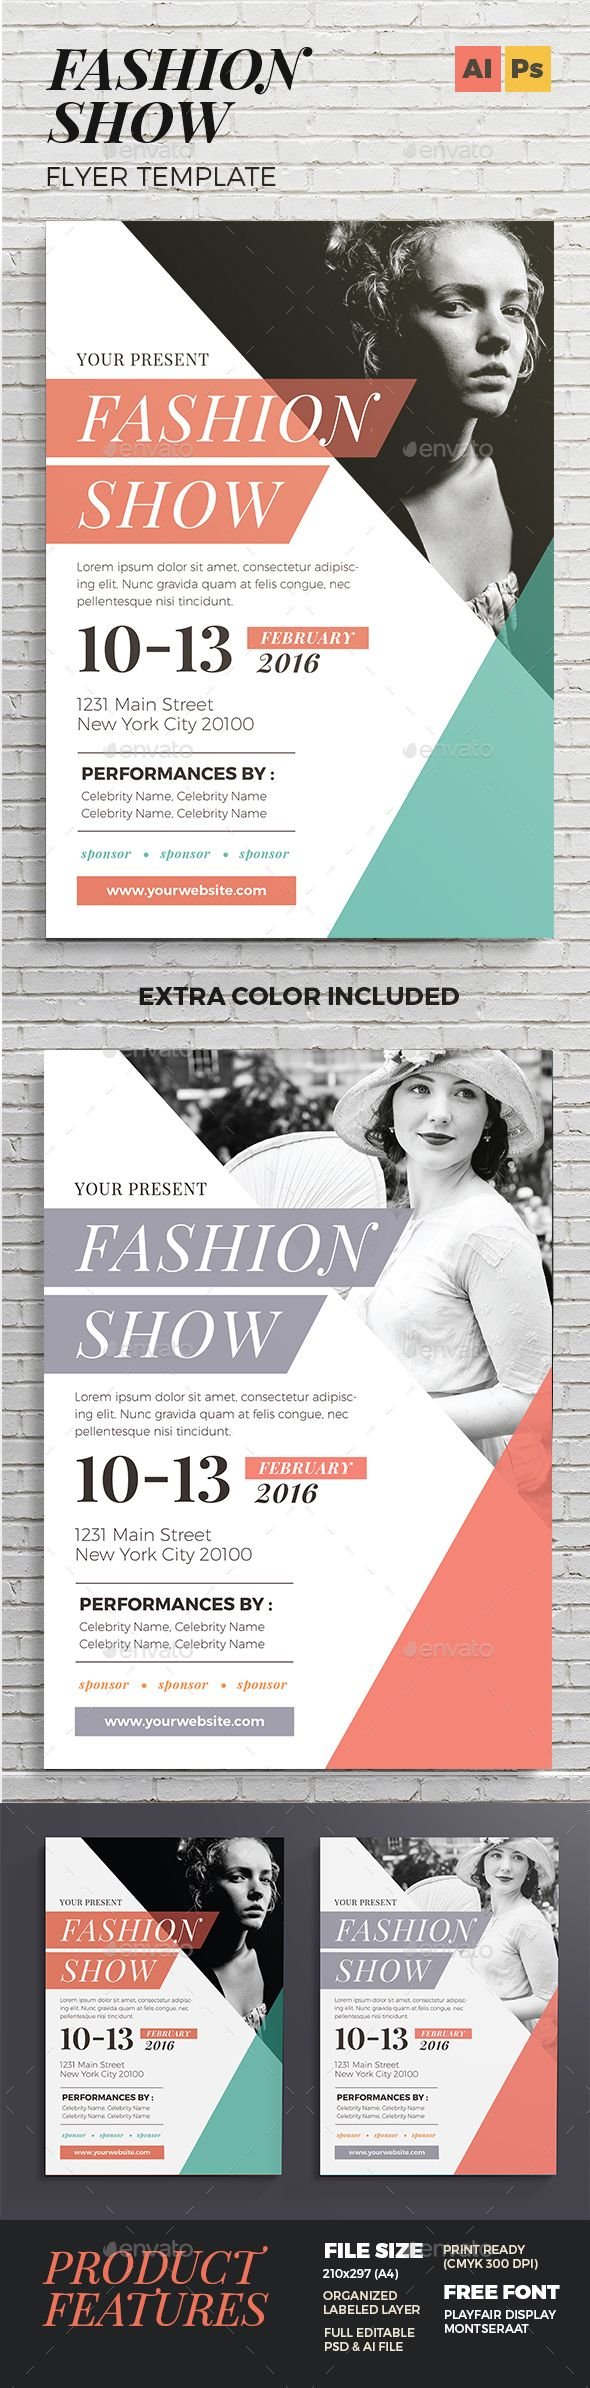 Poster design download - Fashion Show Flyer